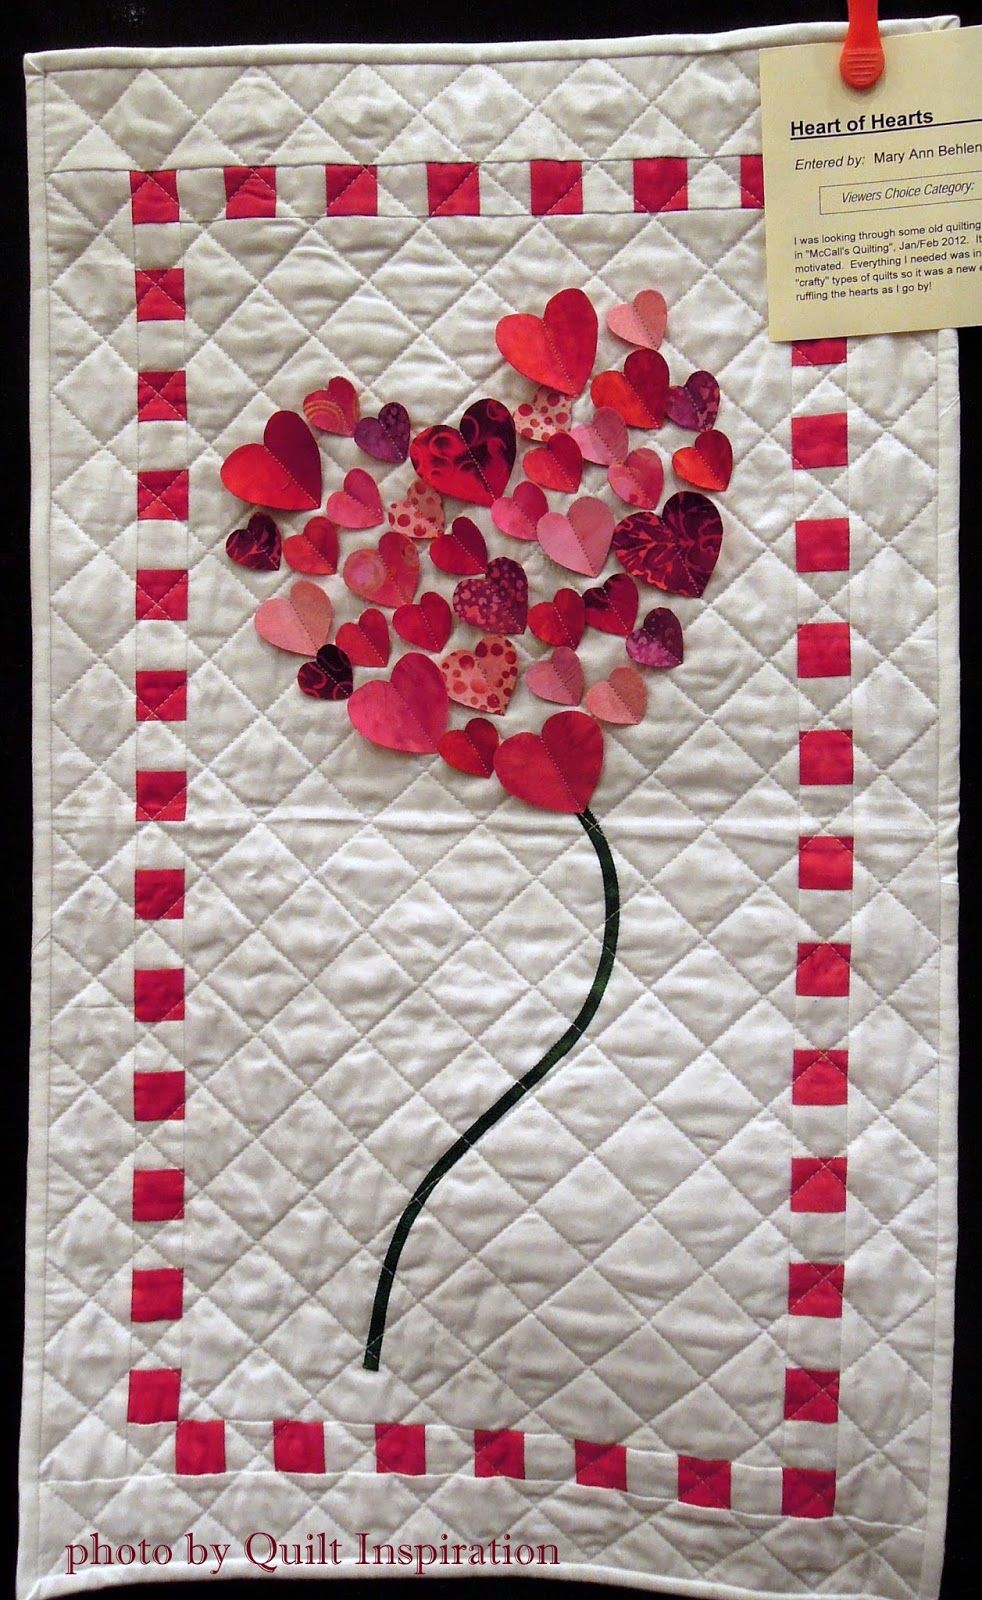 "Heart of Hearts, 18 x 30"", by Mary Ann Behlen Hruska, 2014 Contra Costa County Quilters Guild show. Pattern by Ellie Brown. Photo by Quilt Inspiration"